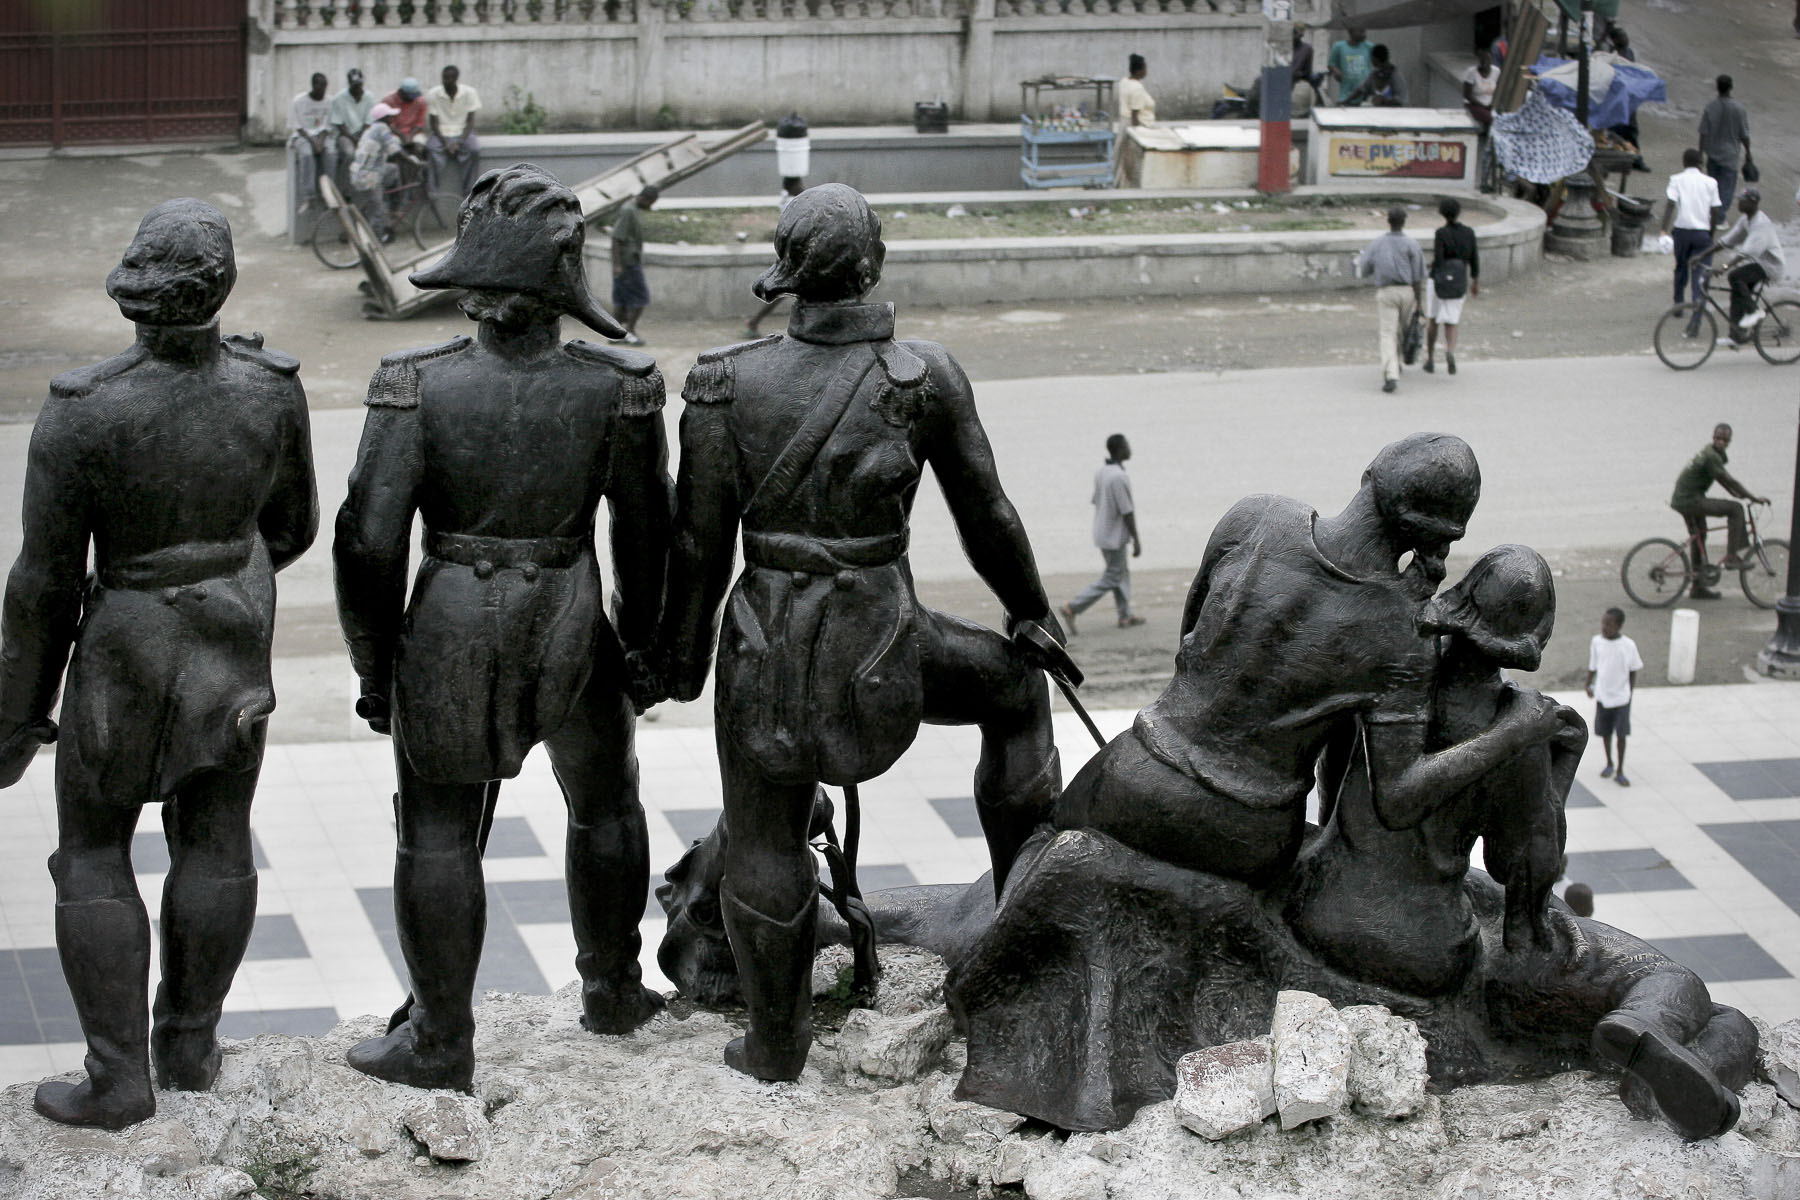 Monument to the Heroes of the Nation: Capois, Dessalines and Christophe in October 2003